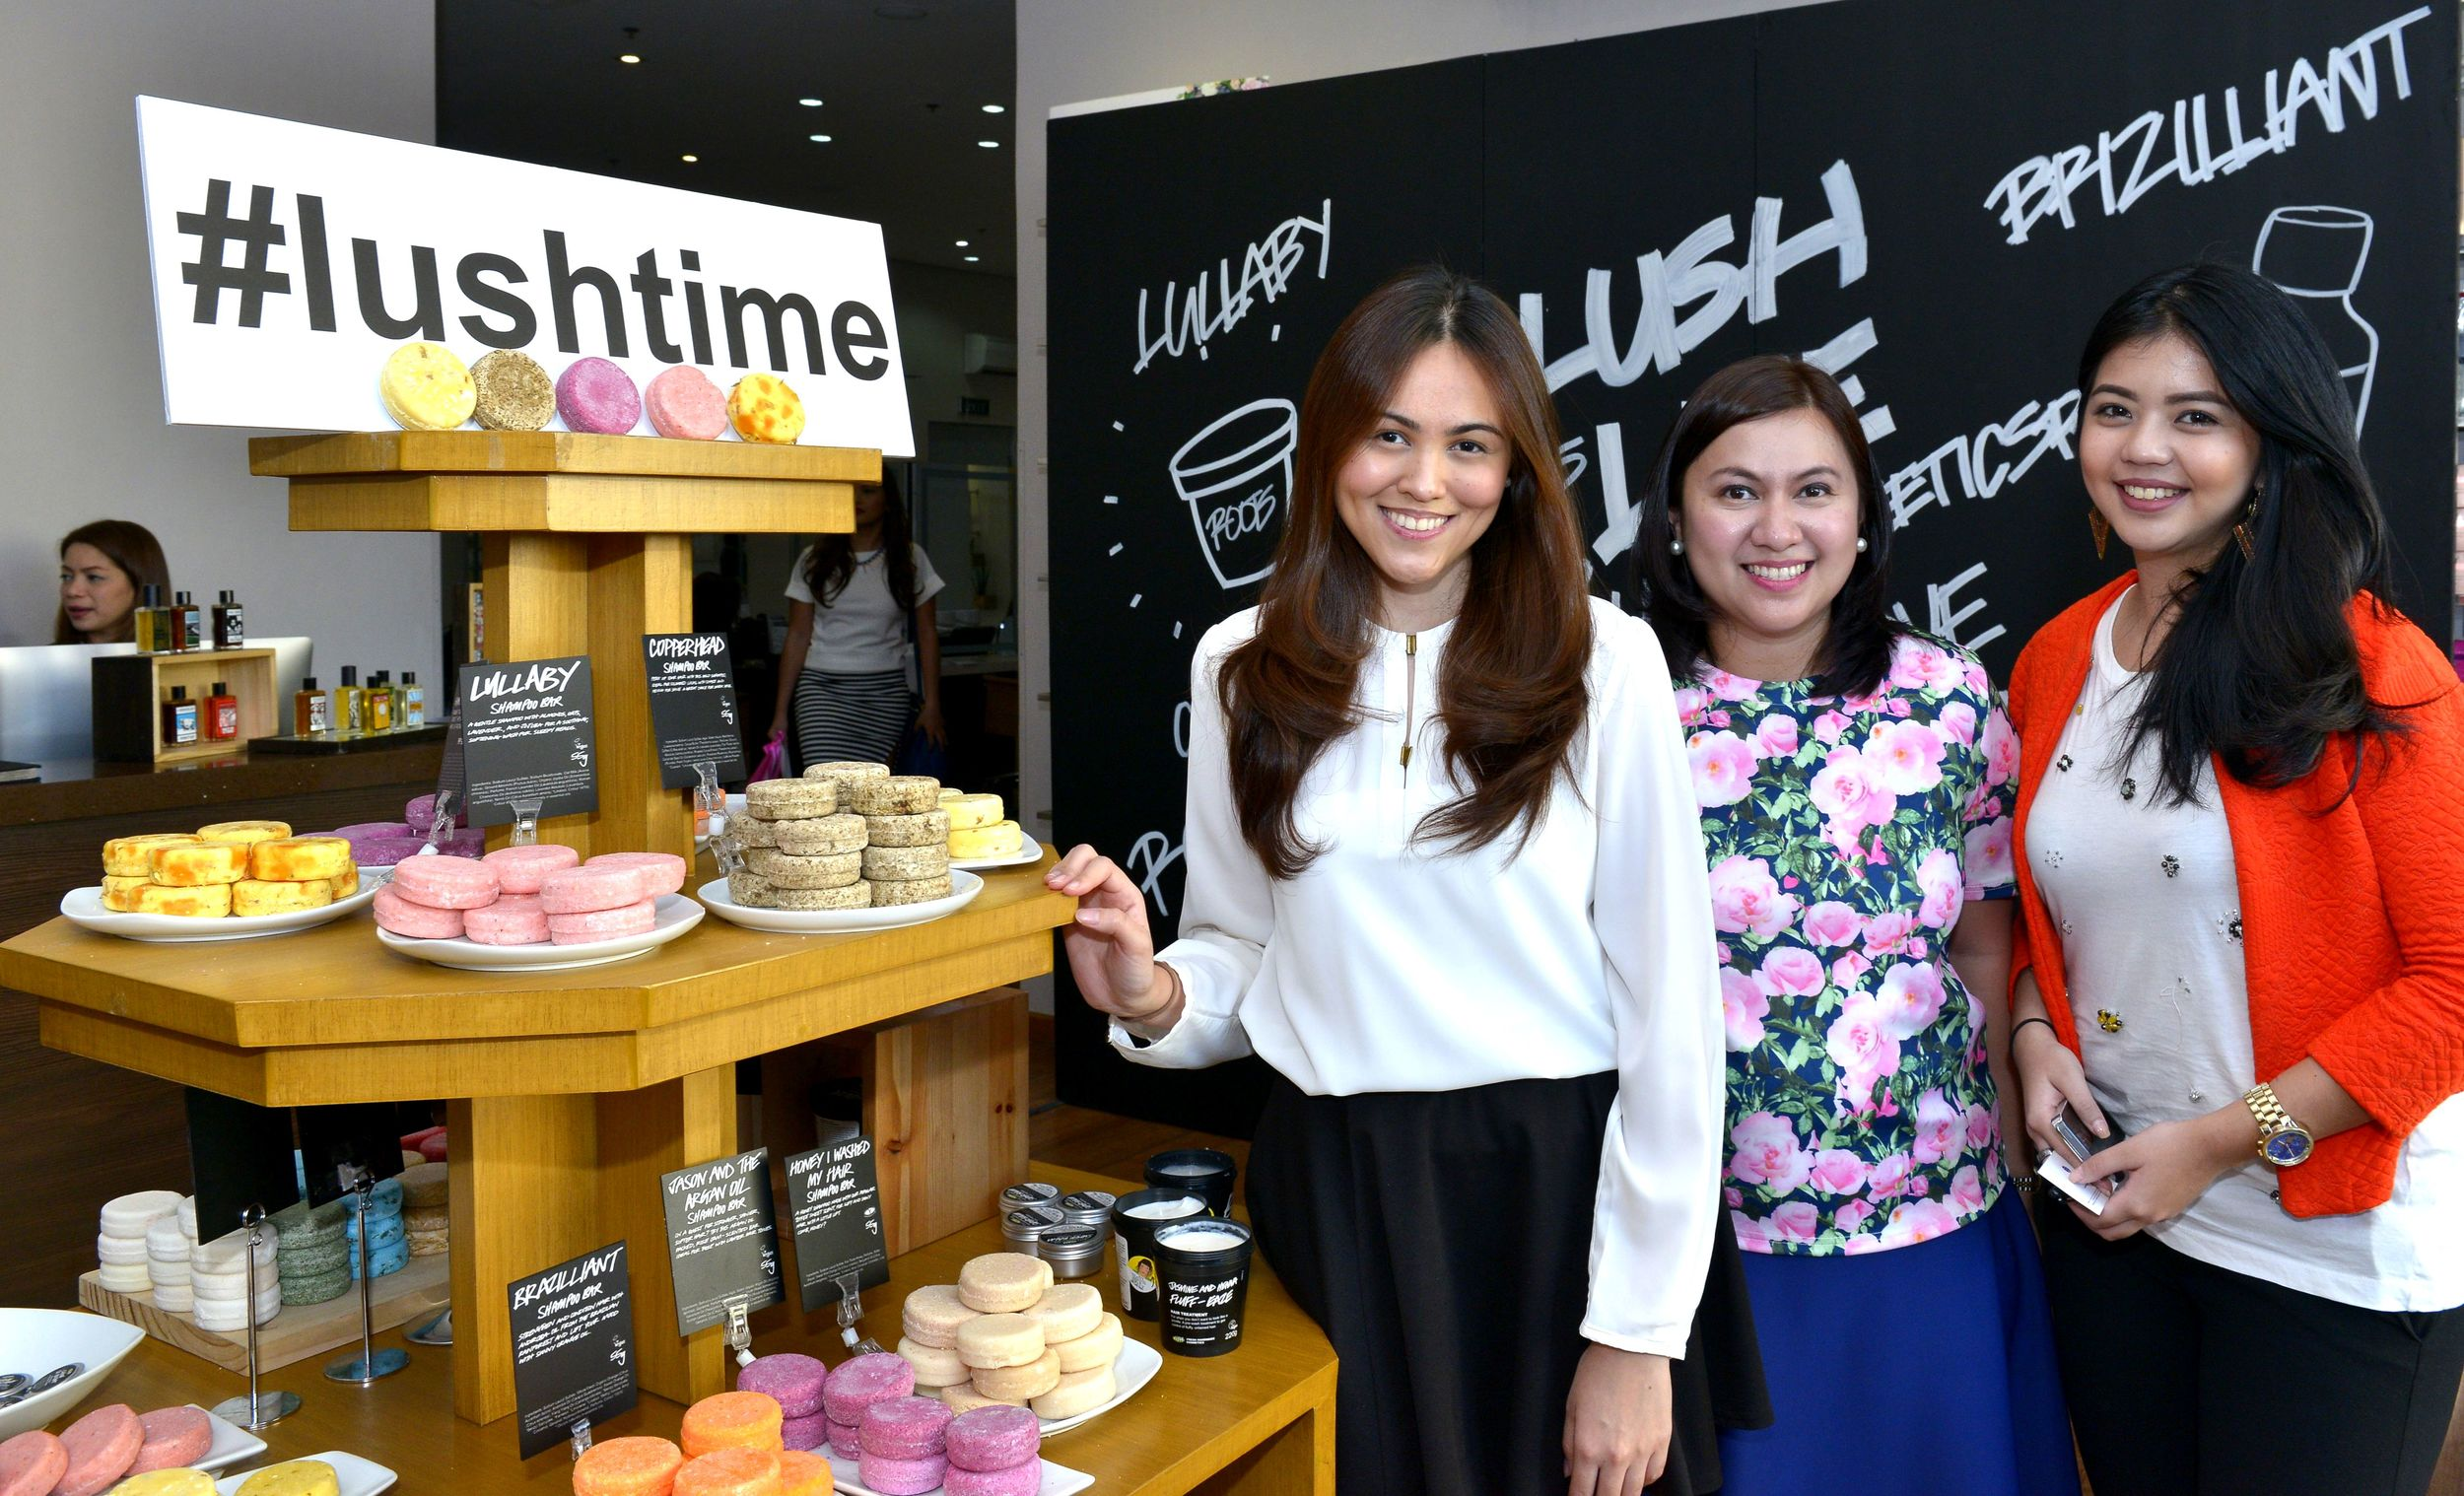 Associate Merchandise Manager for Lush Philippines Tasha Sarmiento, Merchandise Manager for Lush Philippines Ida Nones and Merchandise Assistant for Lush Philippines Kesh Tatlonghar